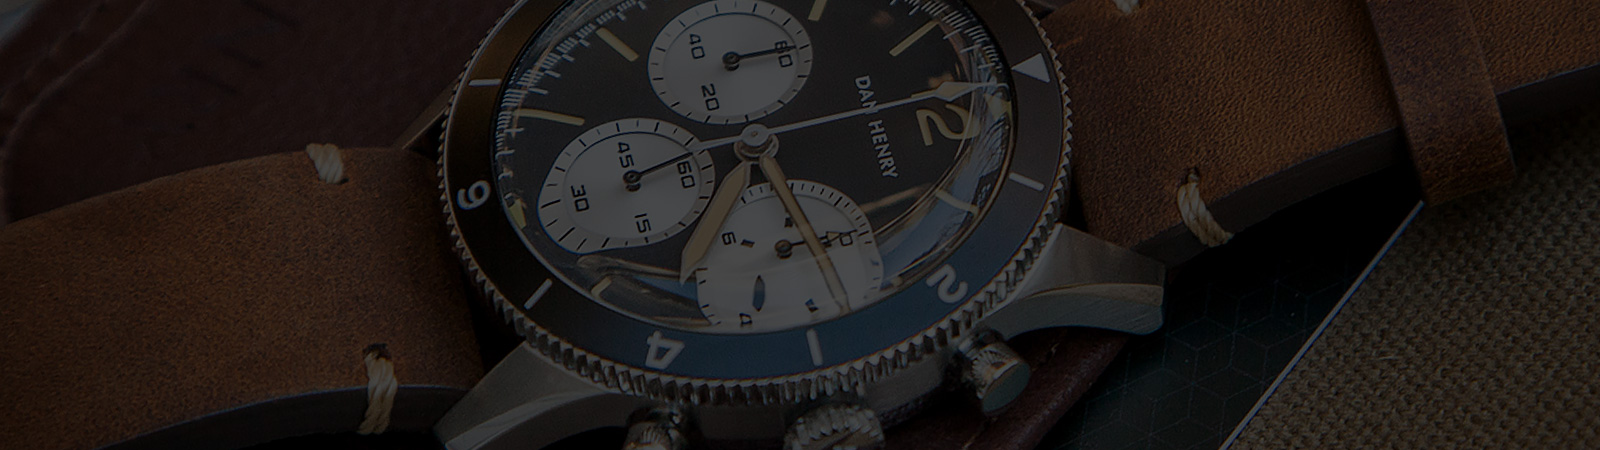 MEET THE WATCH: Dan Henry 1963 Chronograph – The Vintage Inspired Bargain